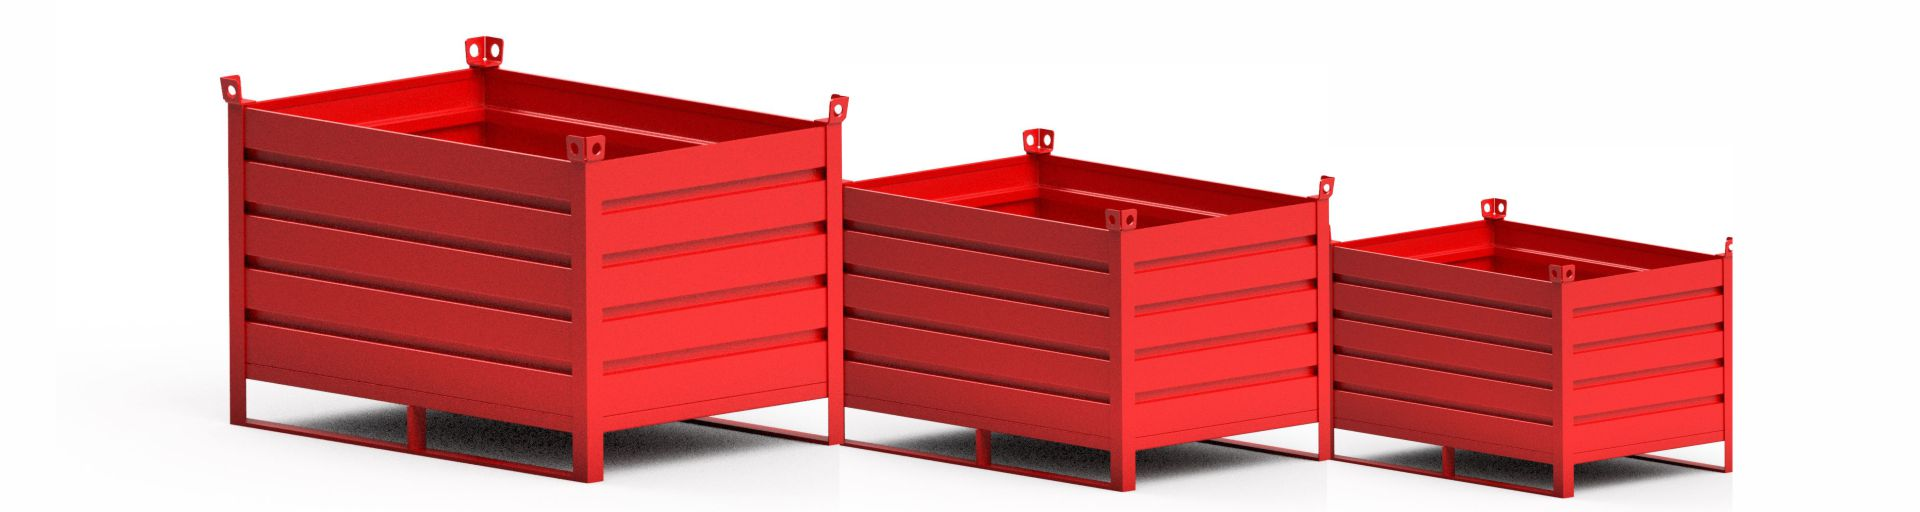 Sheet metal containers